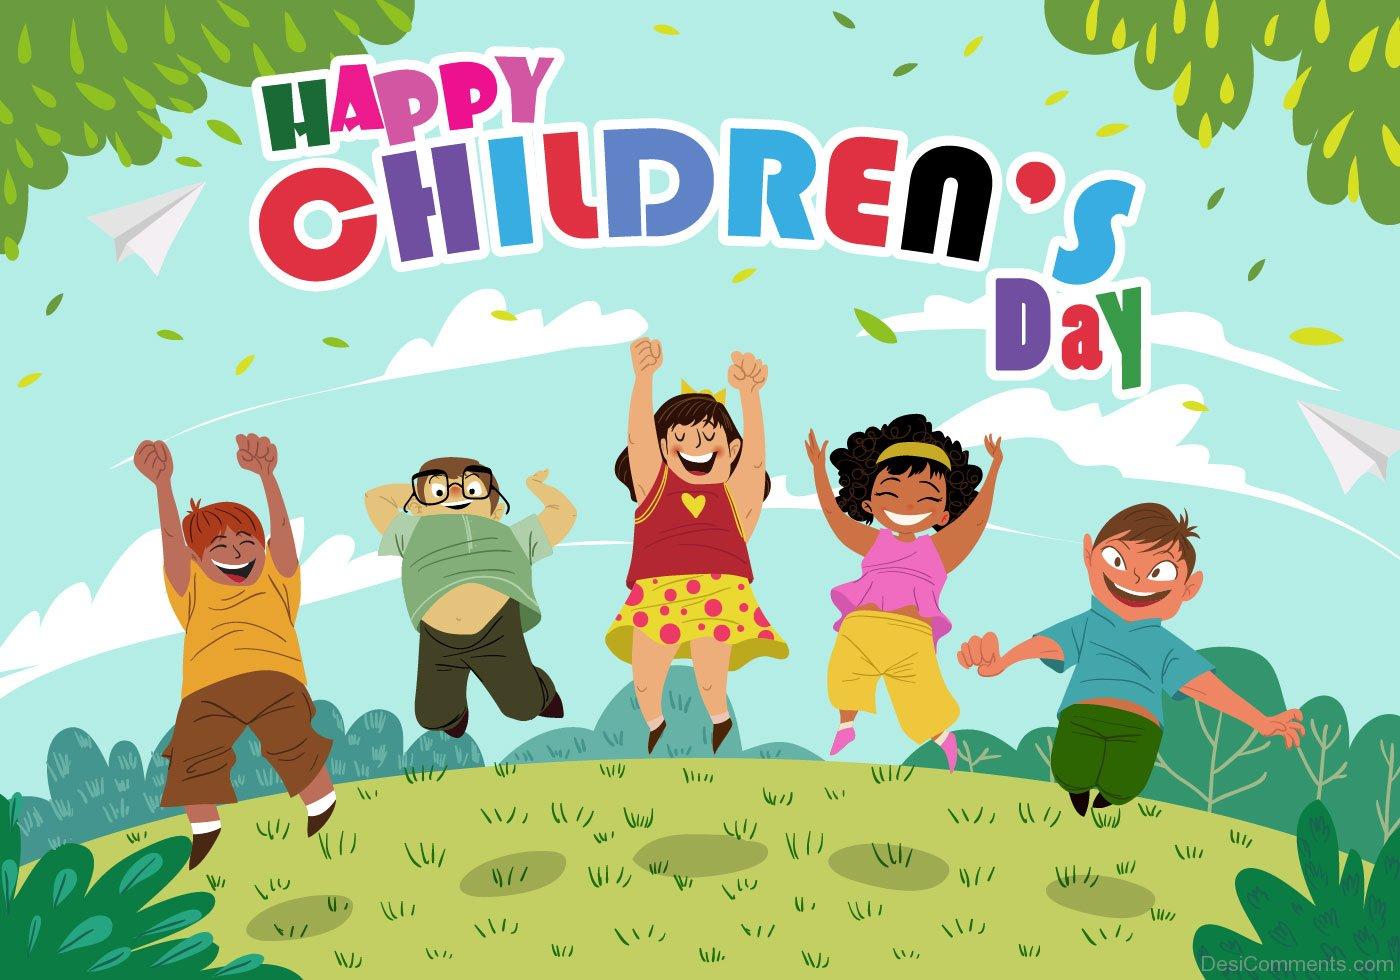 childrens day There is no rhyme or reason for the discrepancies in dates, all that is important is that we celebrate and honour children across the world every day.